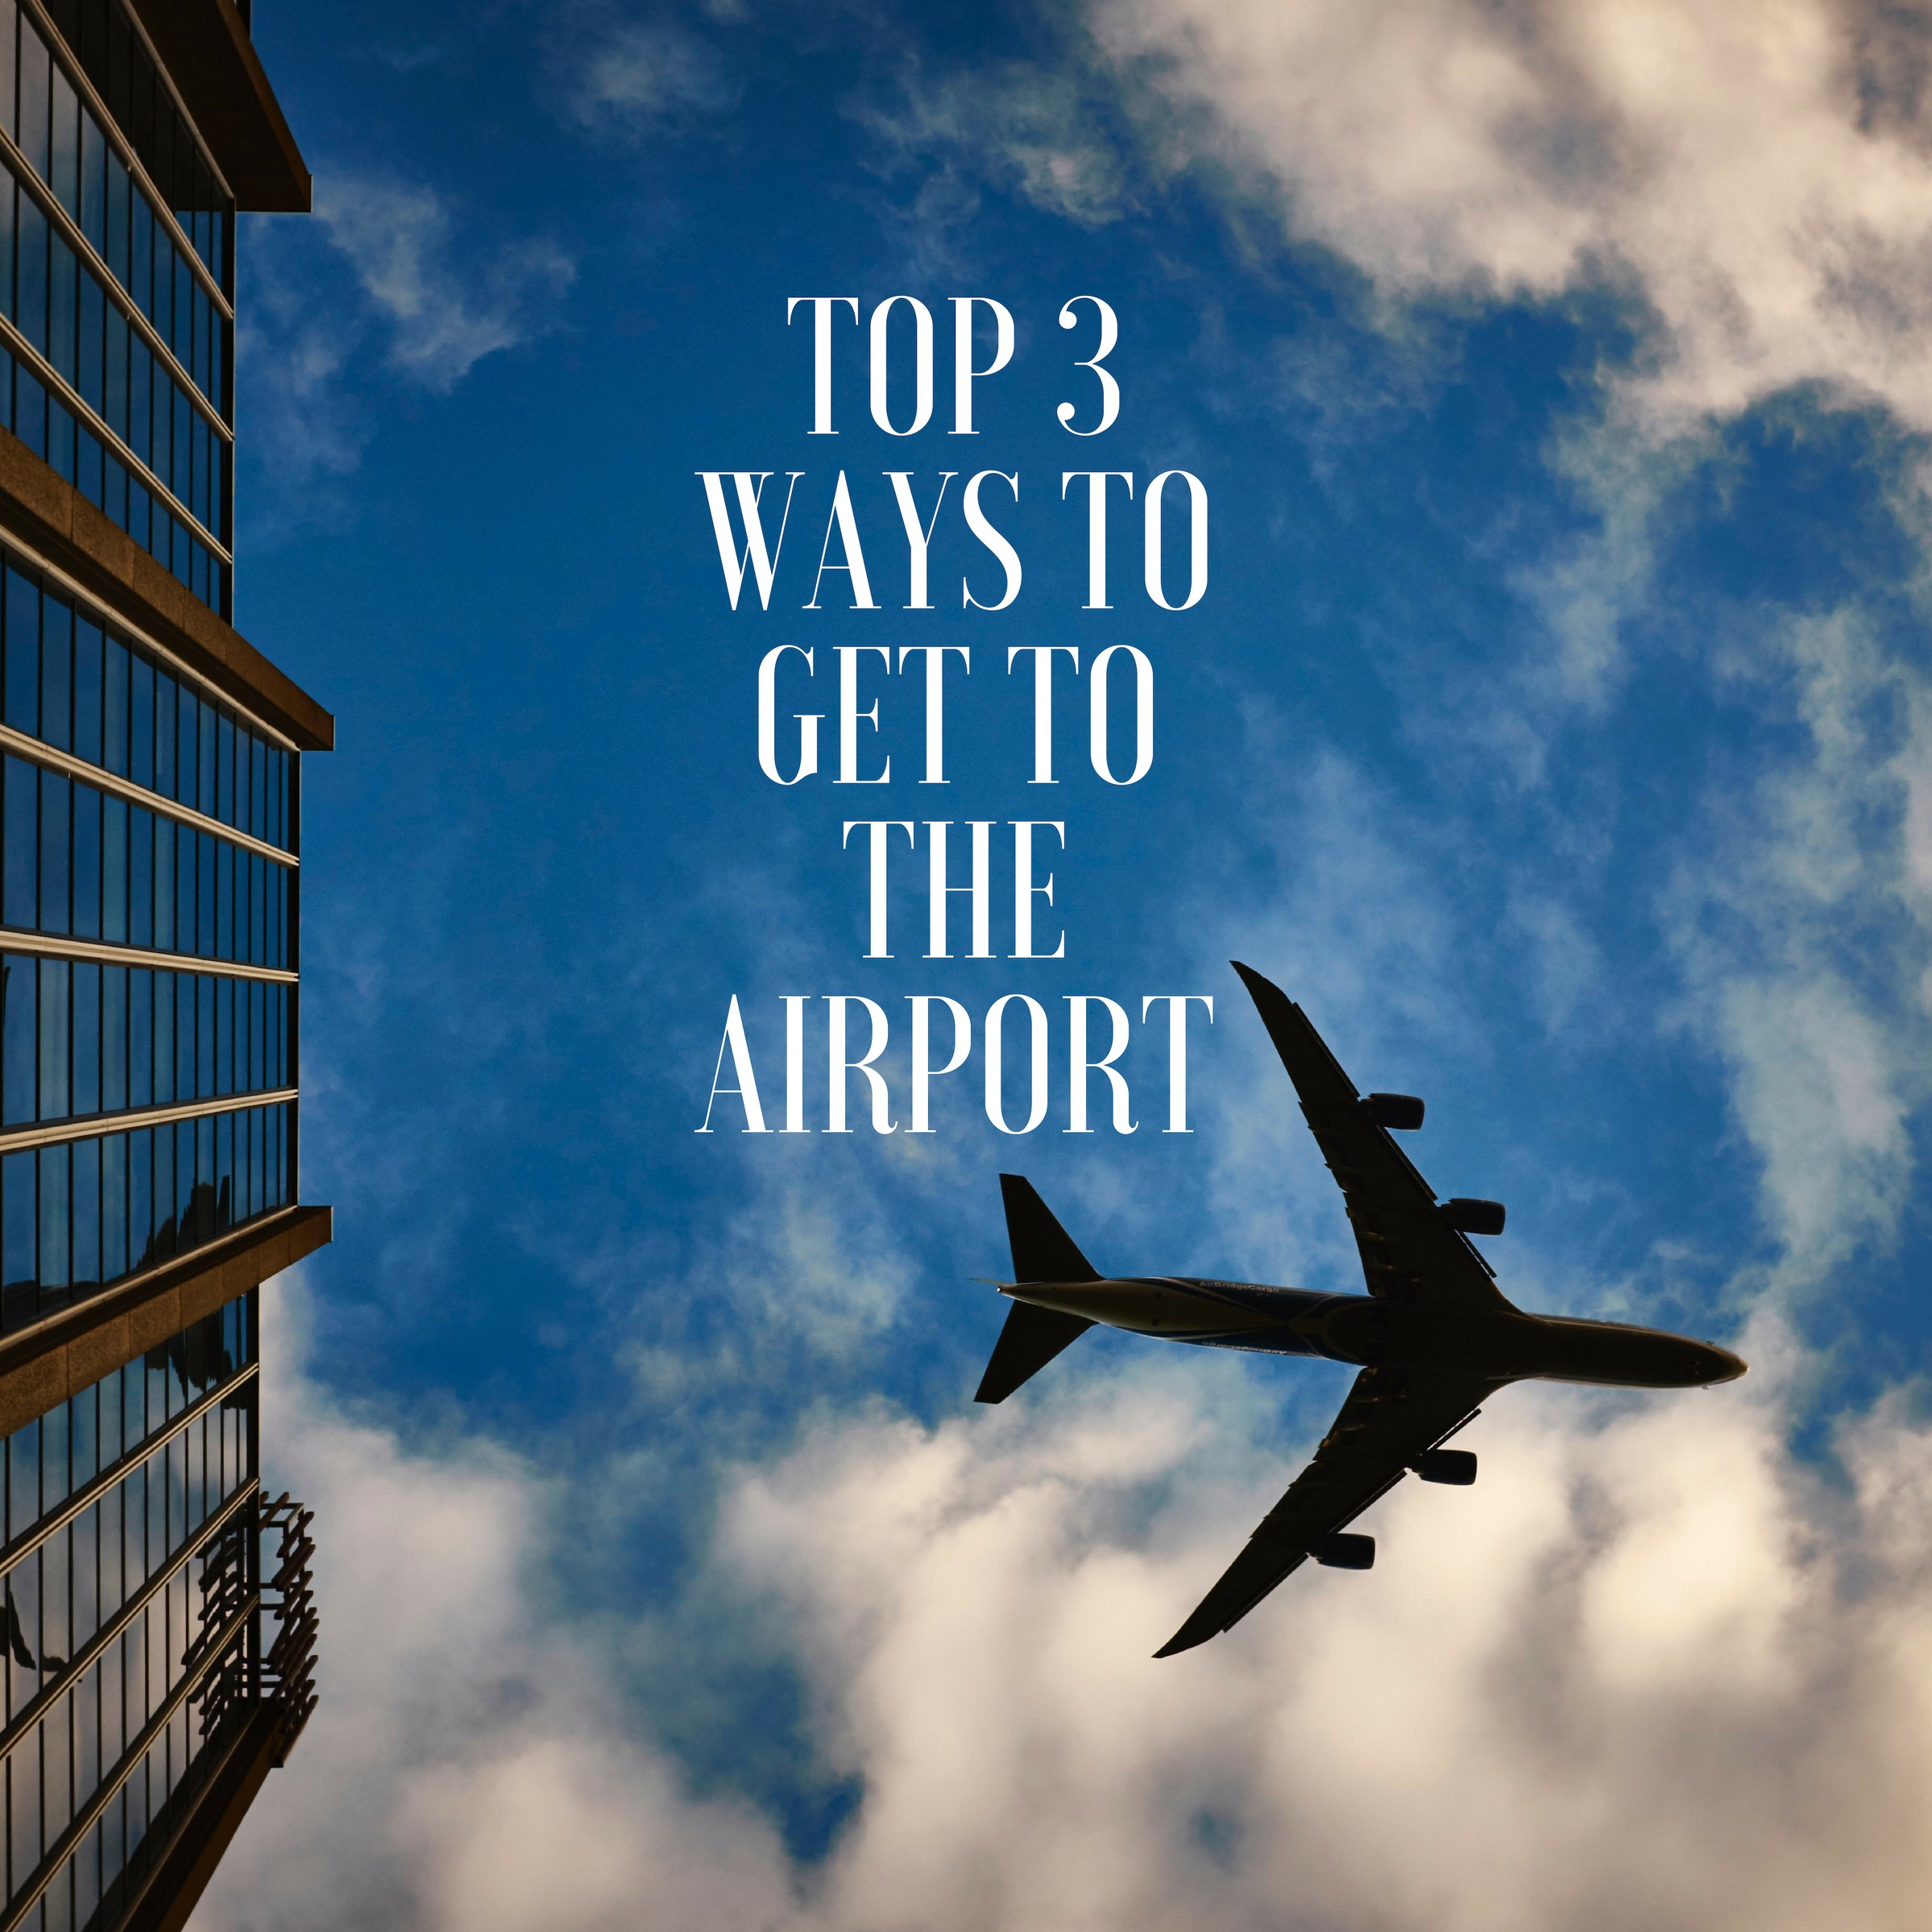 Top 3 Ways To Get To The Airport